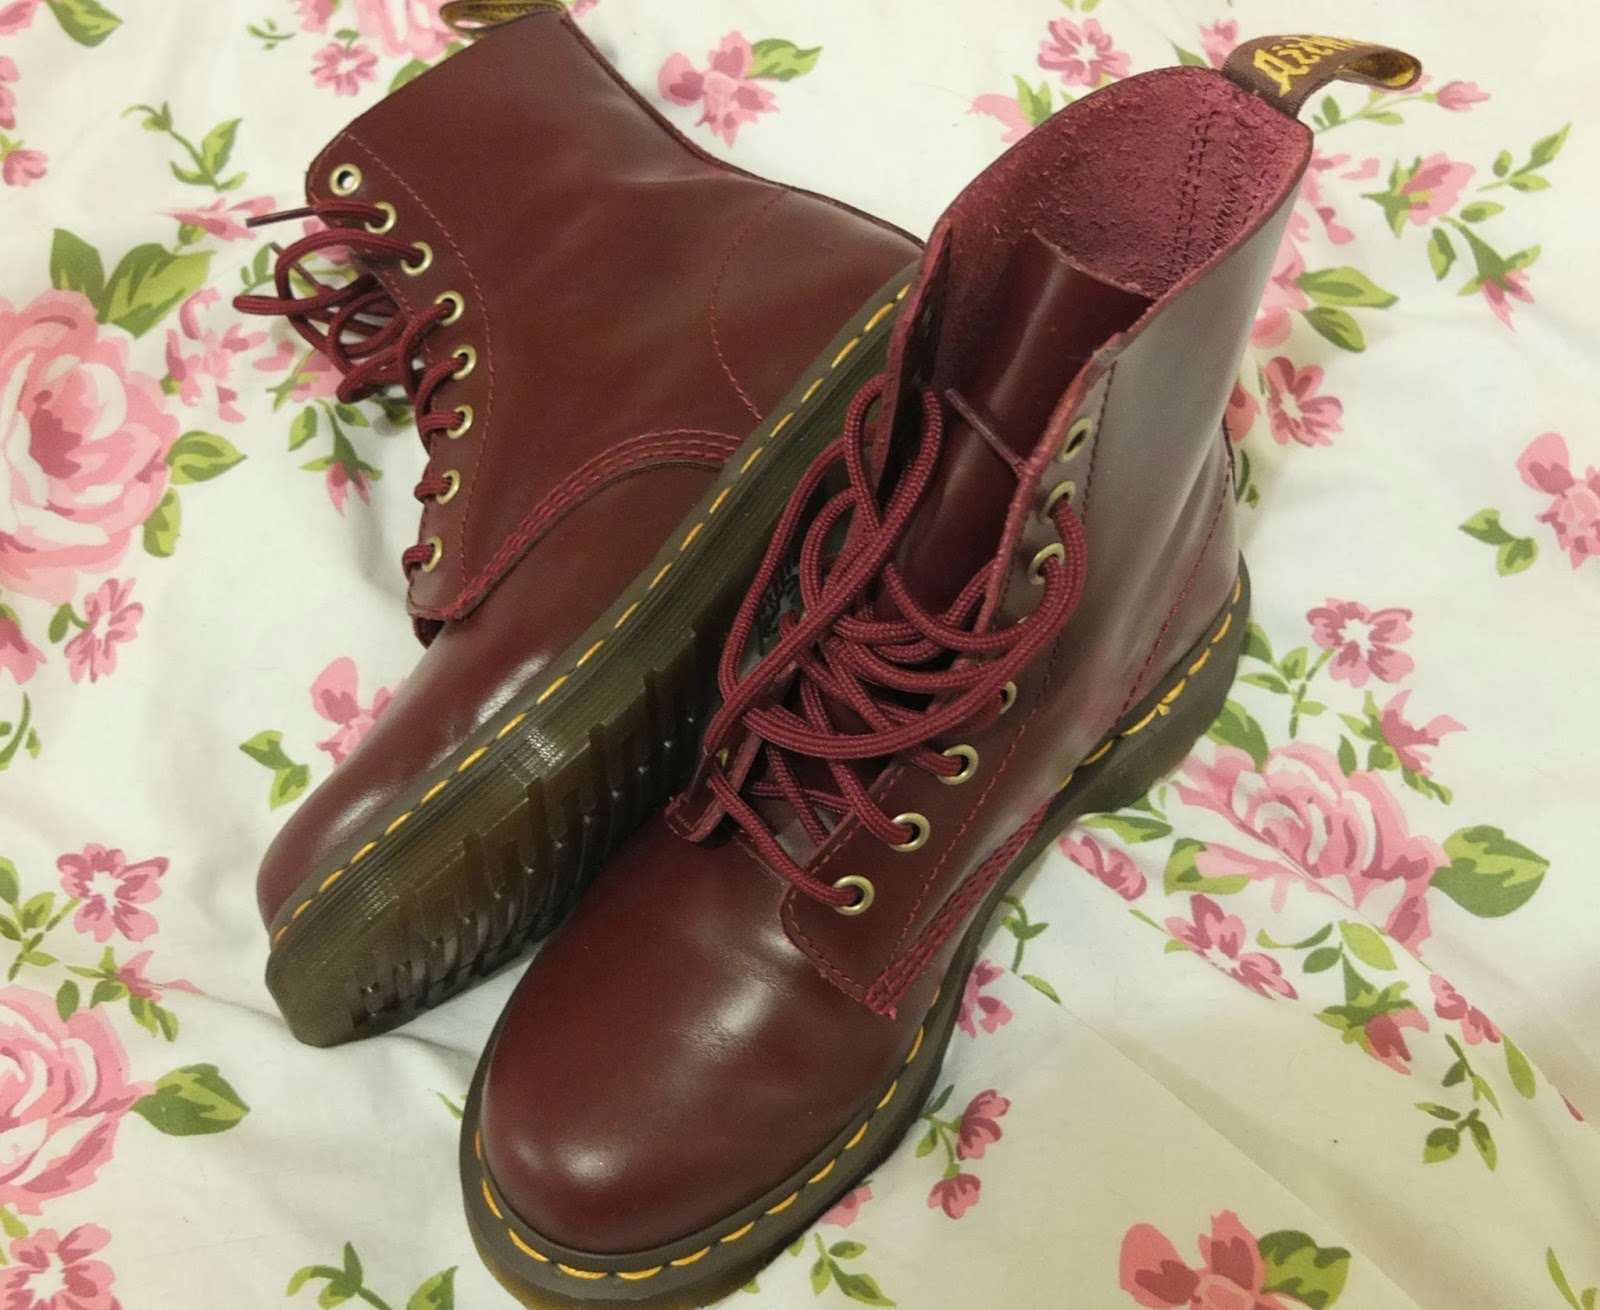 Dr Martens Shiraz Buttero ladies boots on Hello Terri Lowe, UK Fashion Blog.